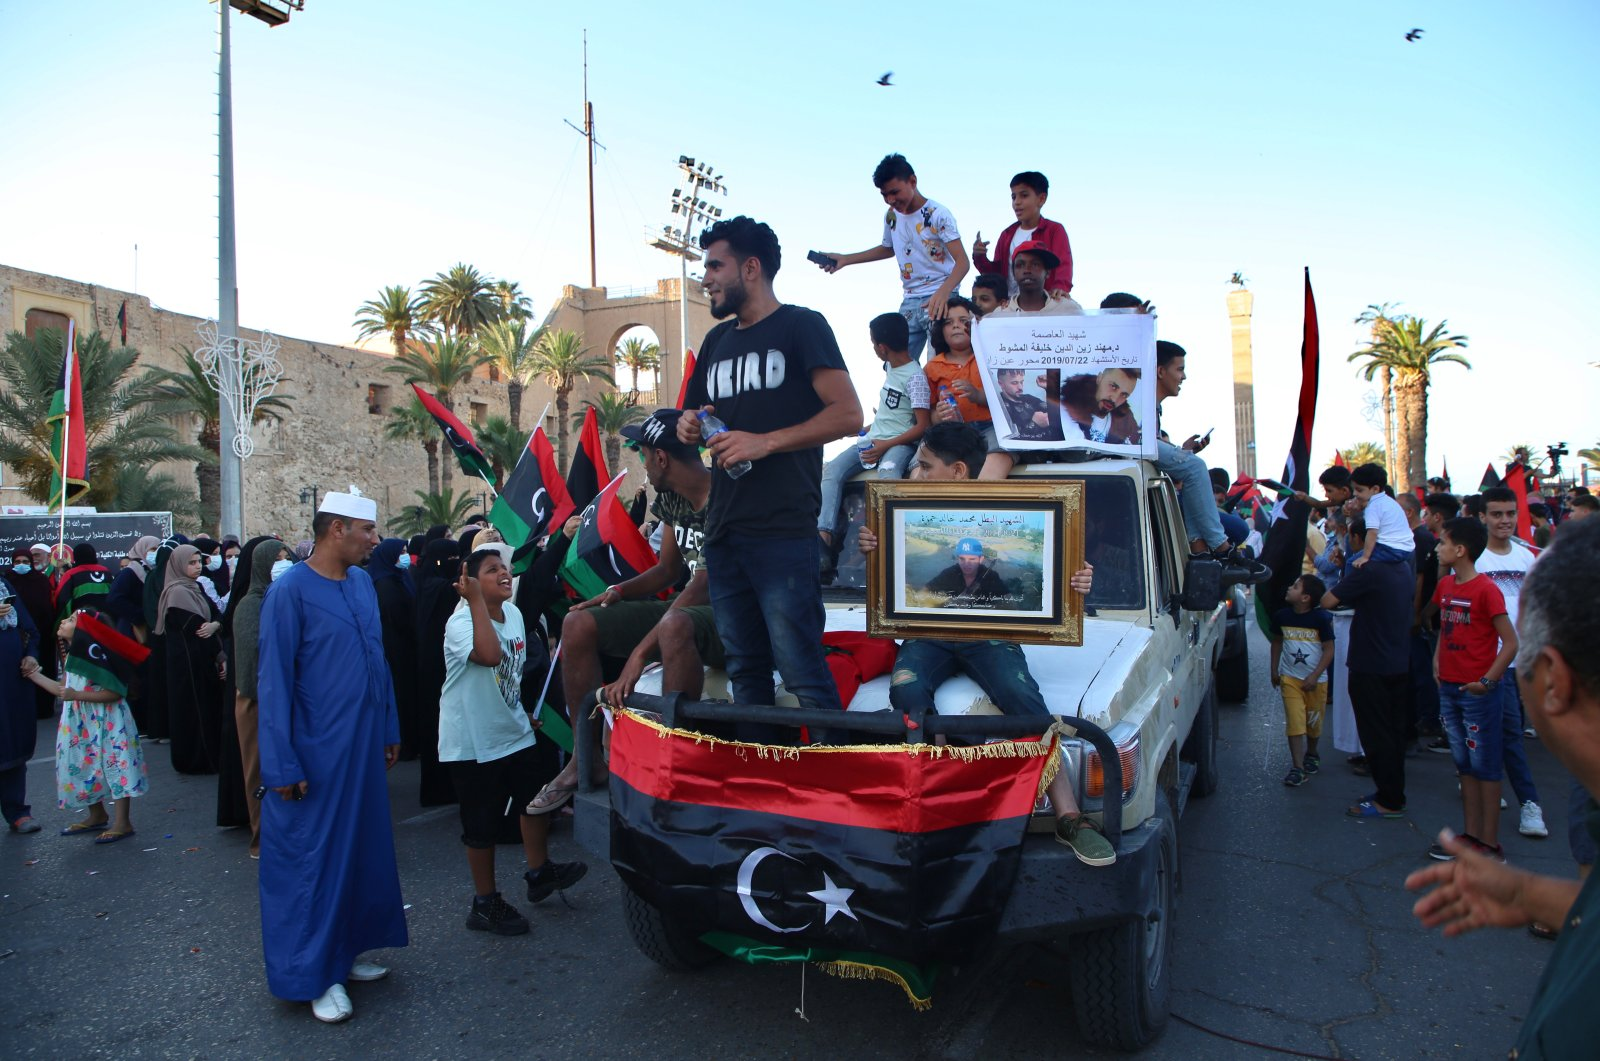 People celebrate with Libyan national flags in the capital Tripoli's Martyrs' Square after fighters loyal to the U.N.-recognized Government of National Accord (GNA) captured the town of Tarhuna, June 5, 2020. (AA Photo)